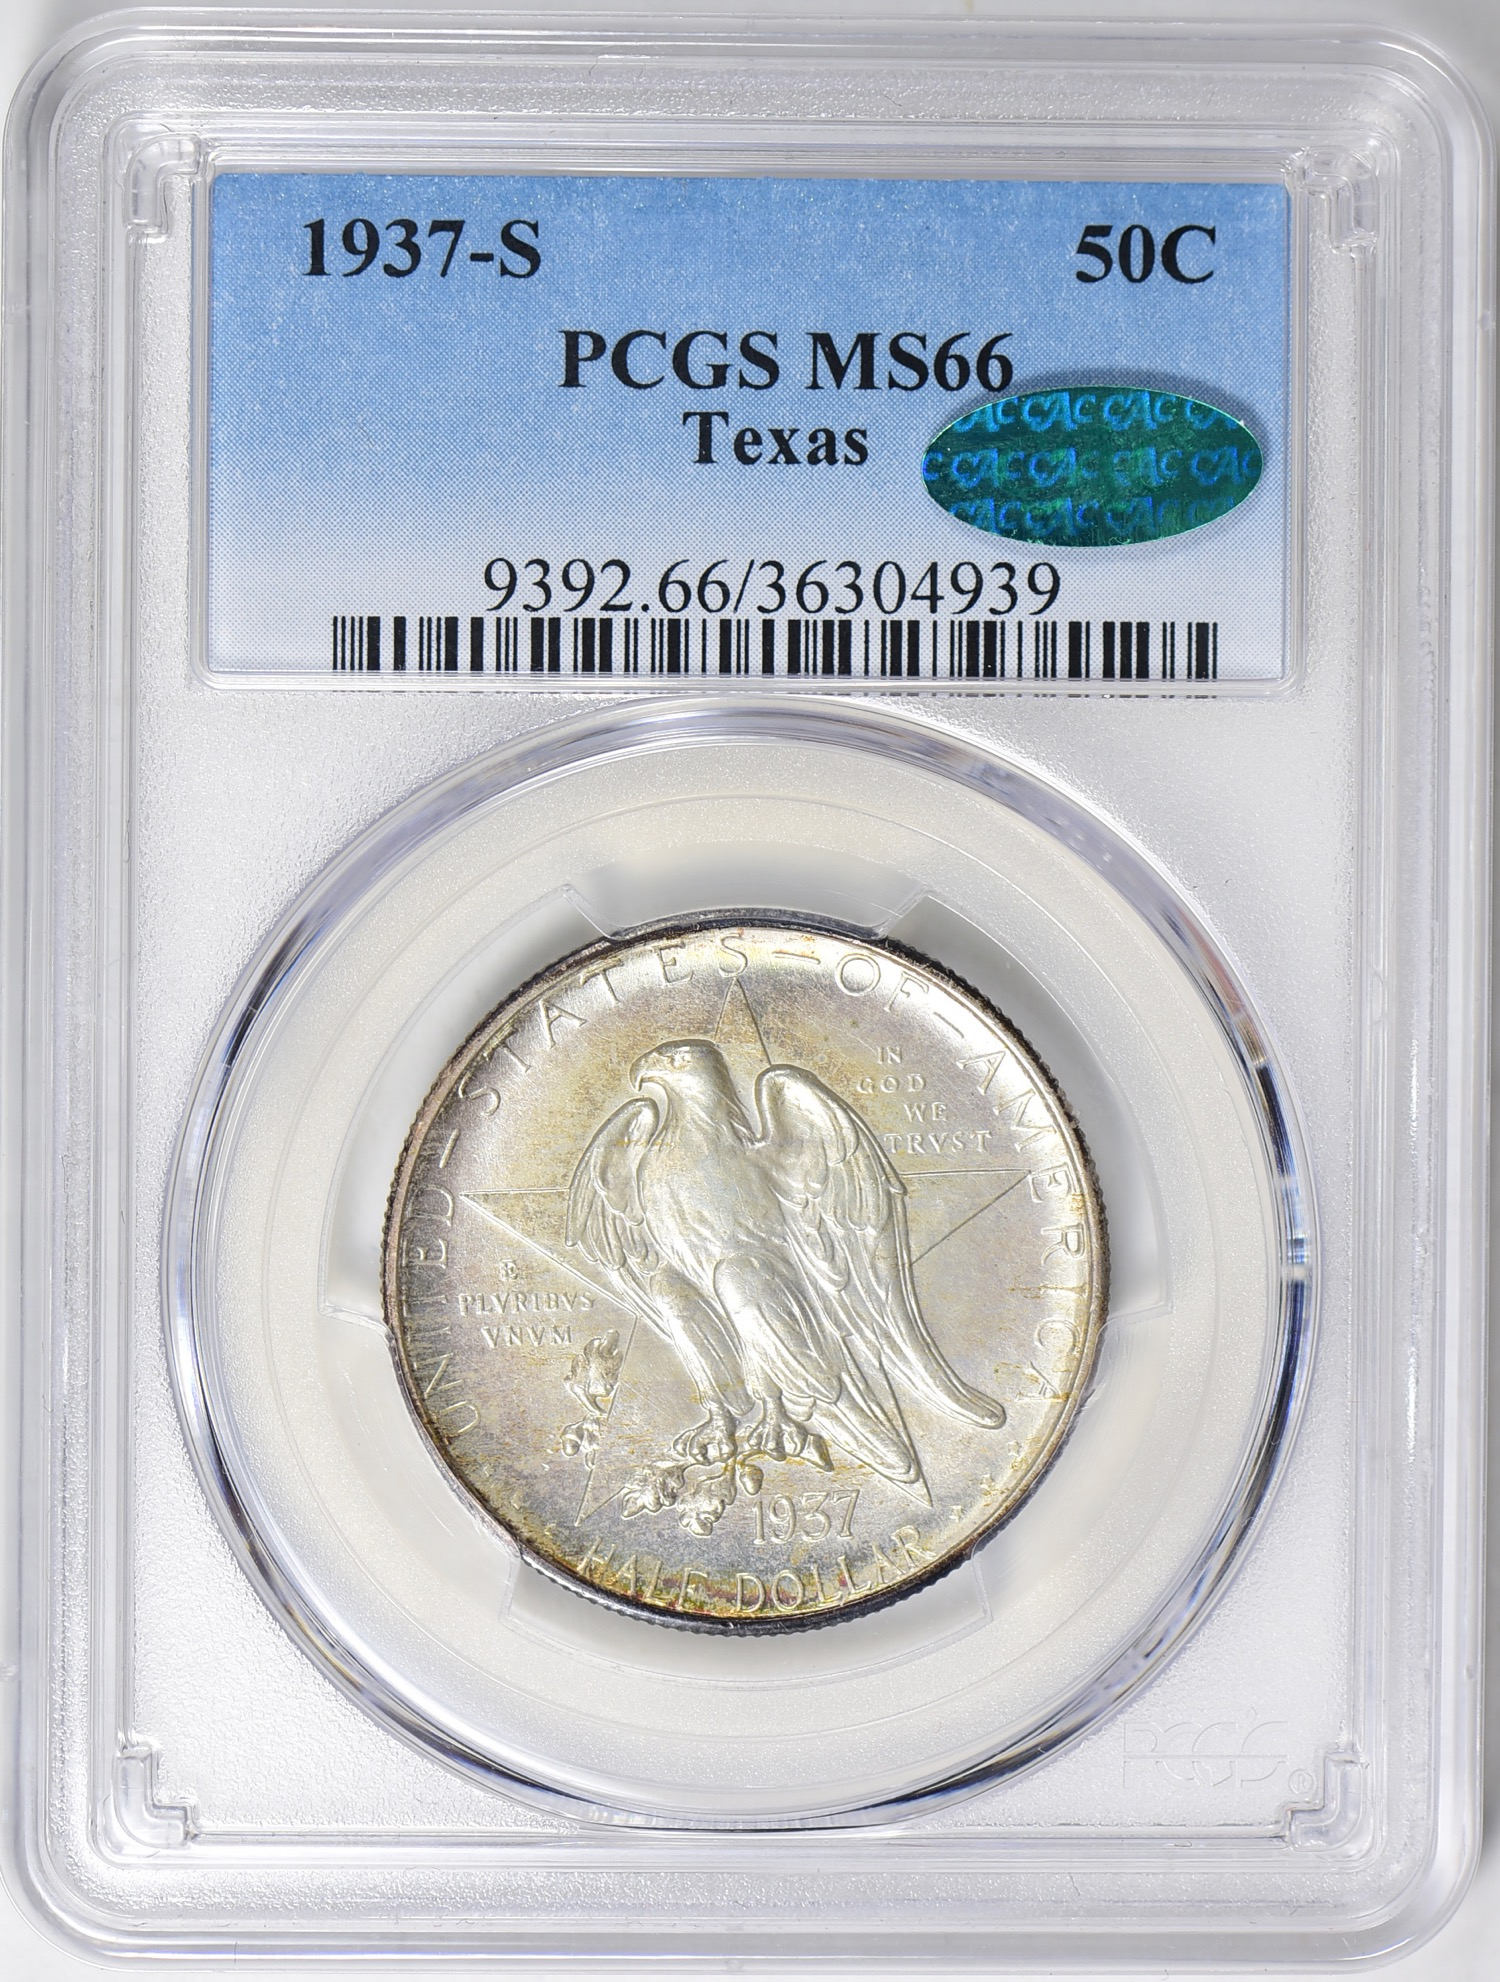 """1937-S Texas MS66 CAC - Acquired 4.7.19 GreatCollections. CC usually prefers """"white"""" silver coins but this has some appealing toning that doesn't show well here. CC now has 9 of 13 Texans for this registry set - all MS66 CAC. This is a great example of a doable, affordable registry set. Many of these coins were under $300 and none were over $600."""